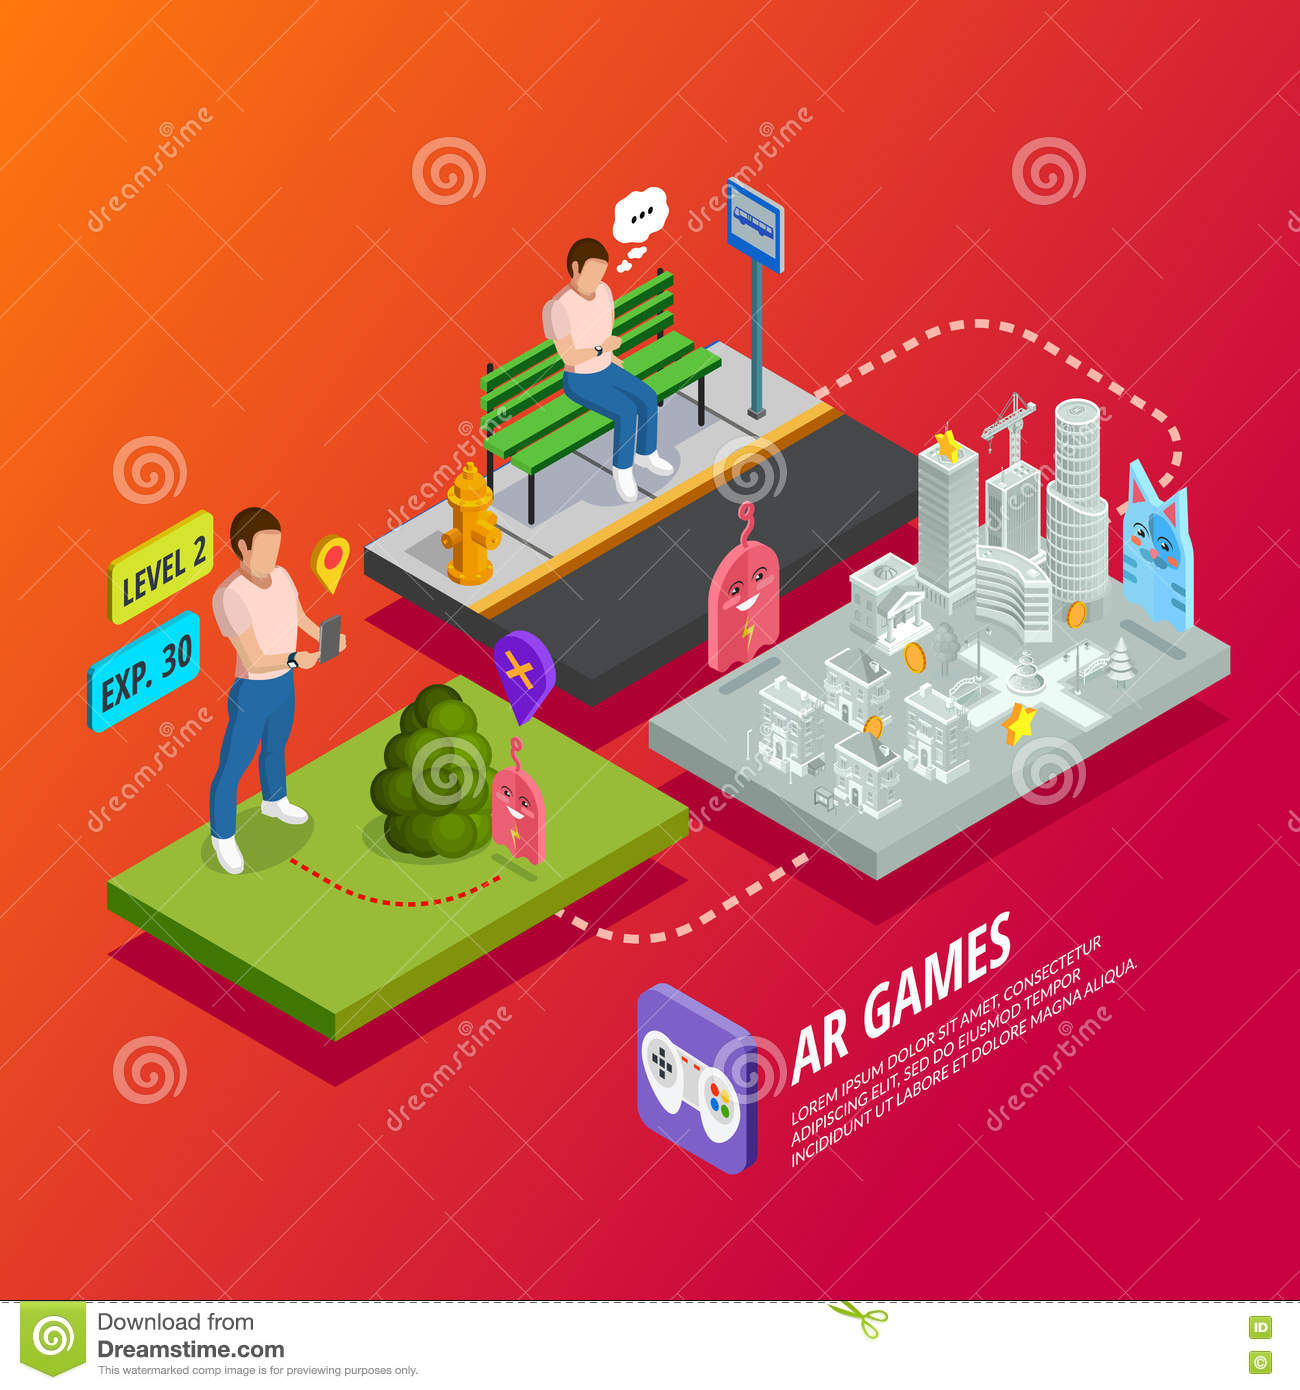 Augmented Reality AR Games Isometric Poster.